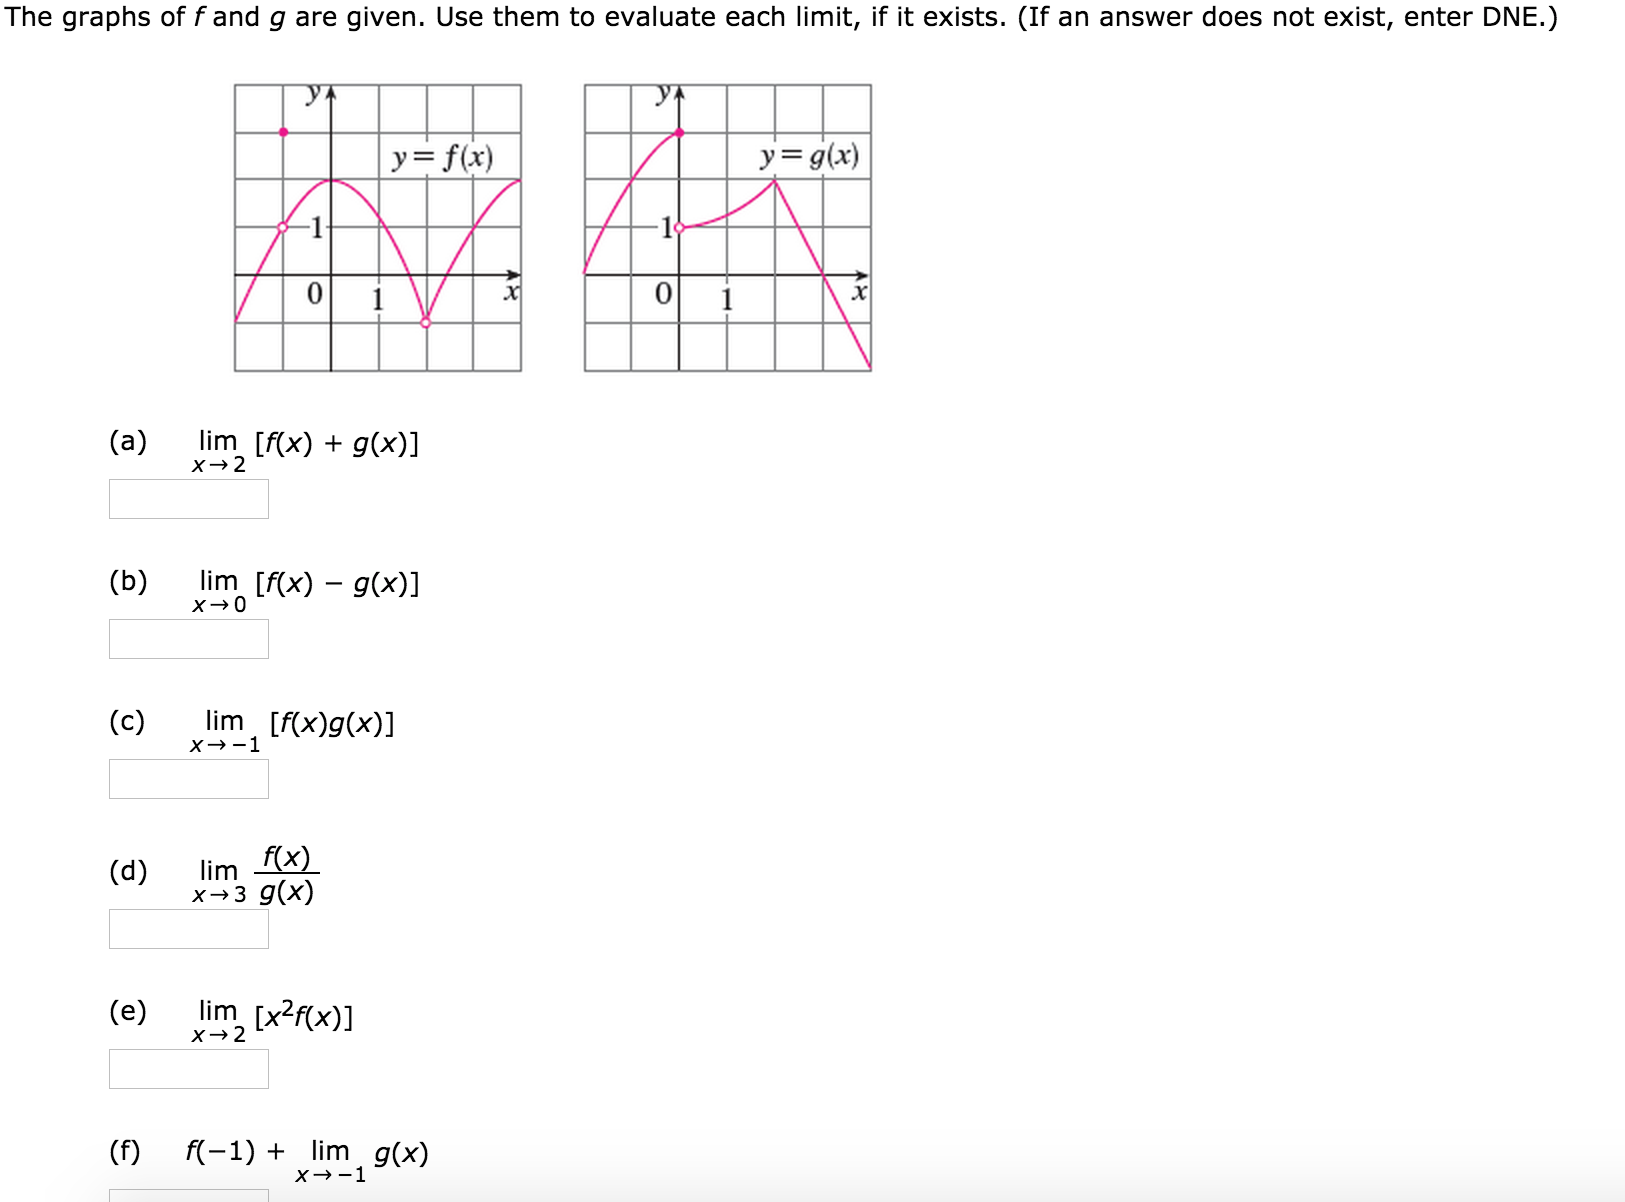 Question: The graphs of f and g are given. Use them to evaluate each limit, if it exists. (If an answer doe.